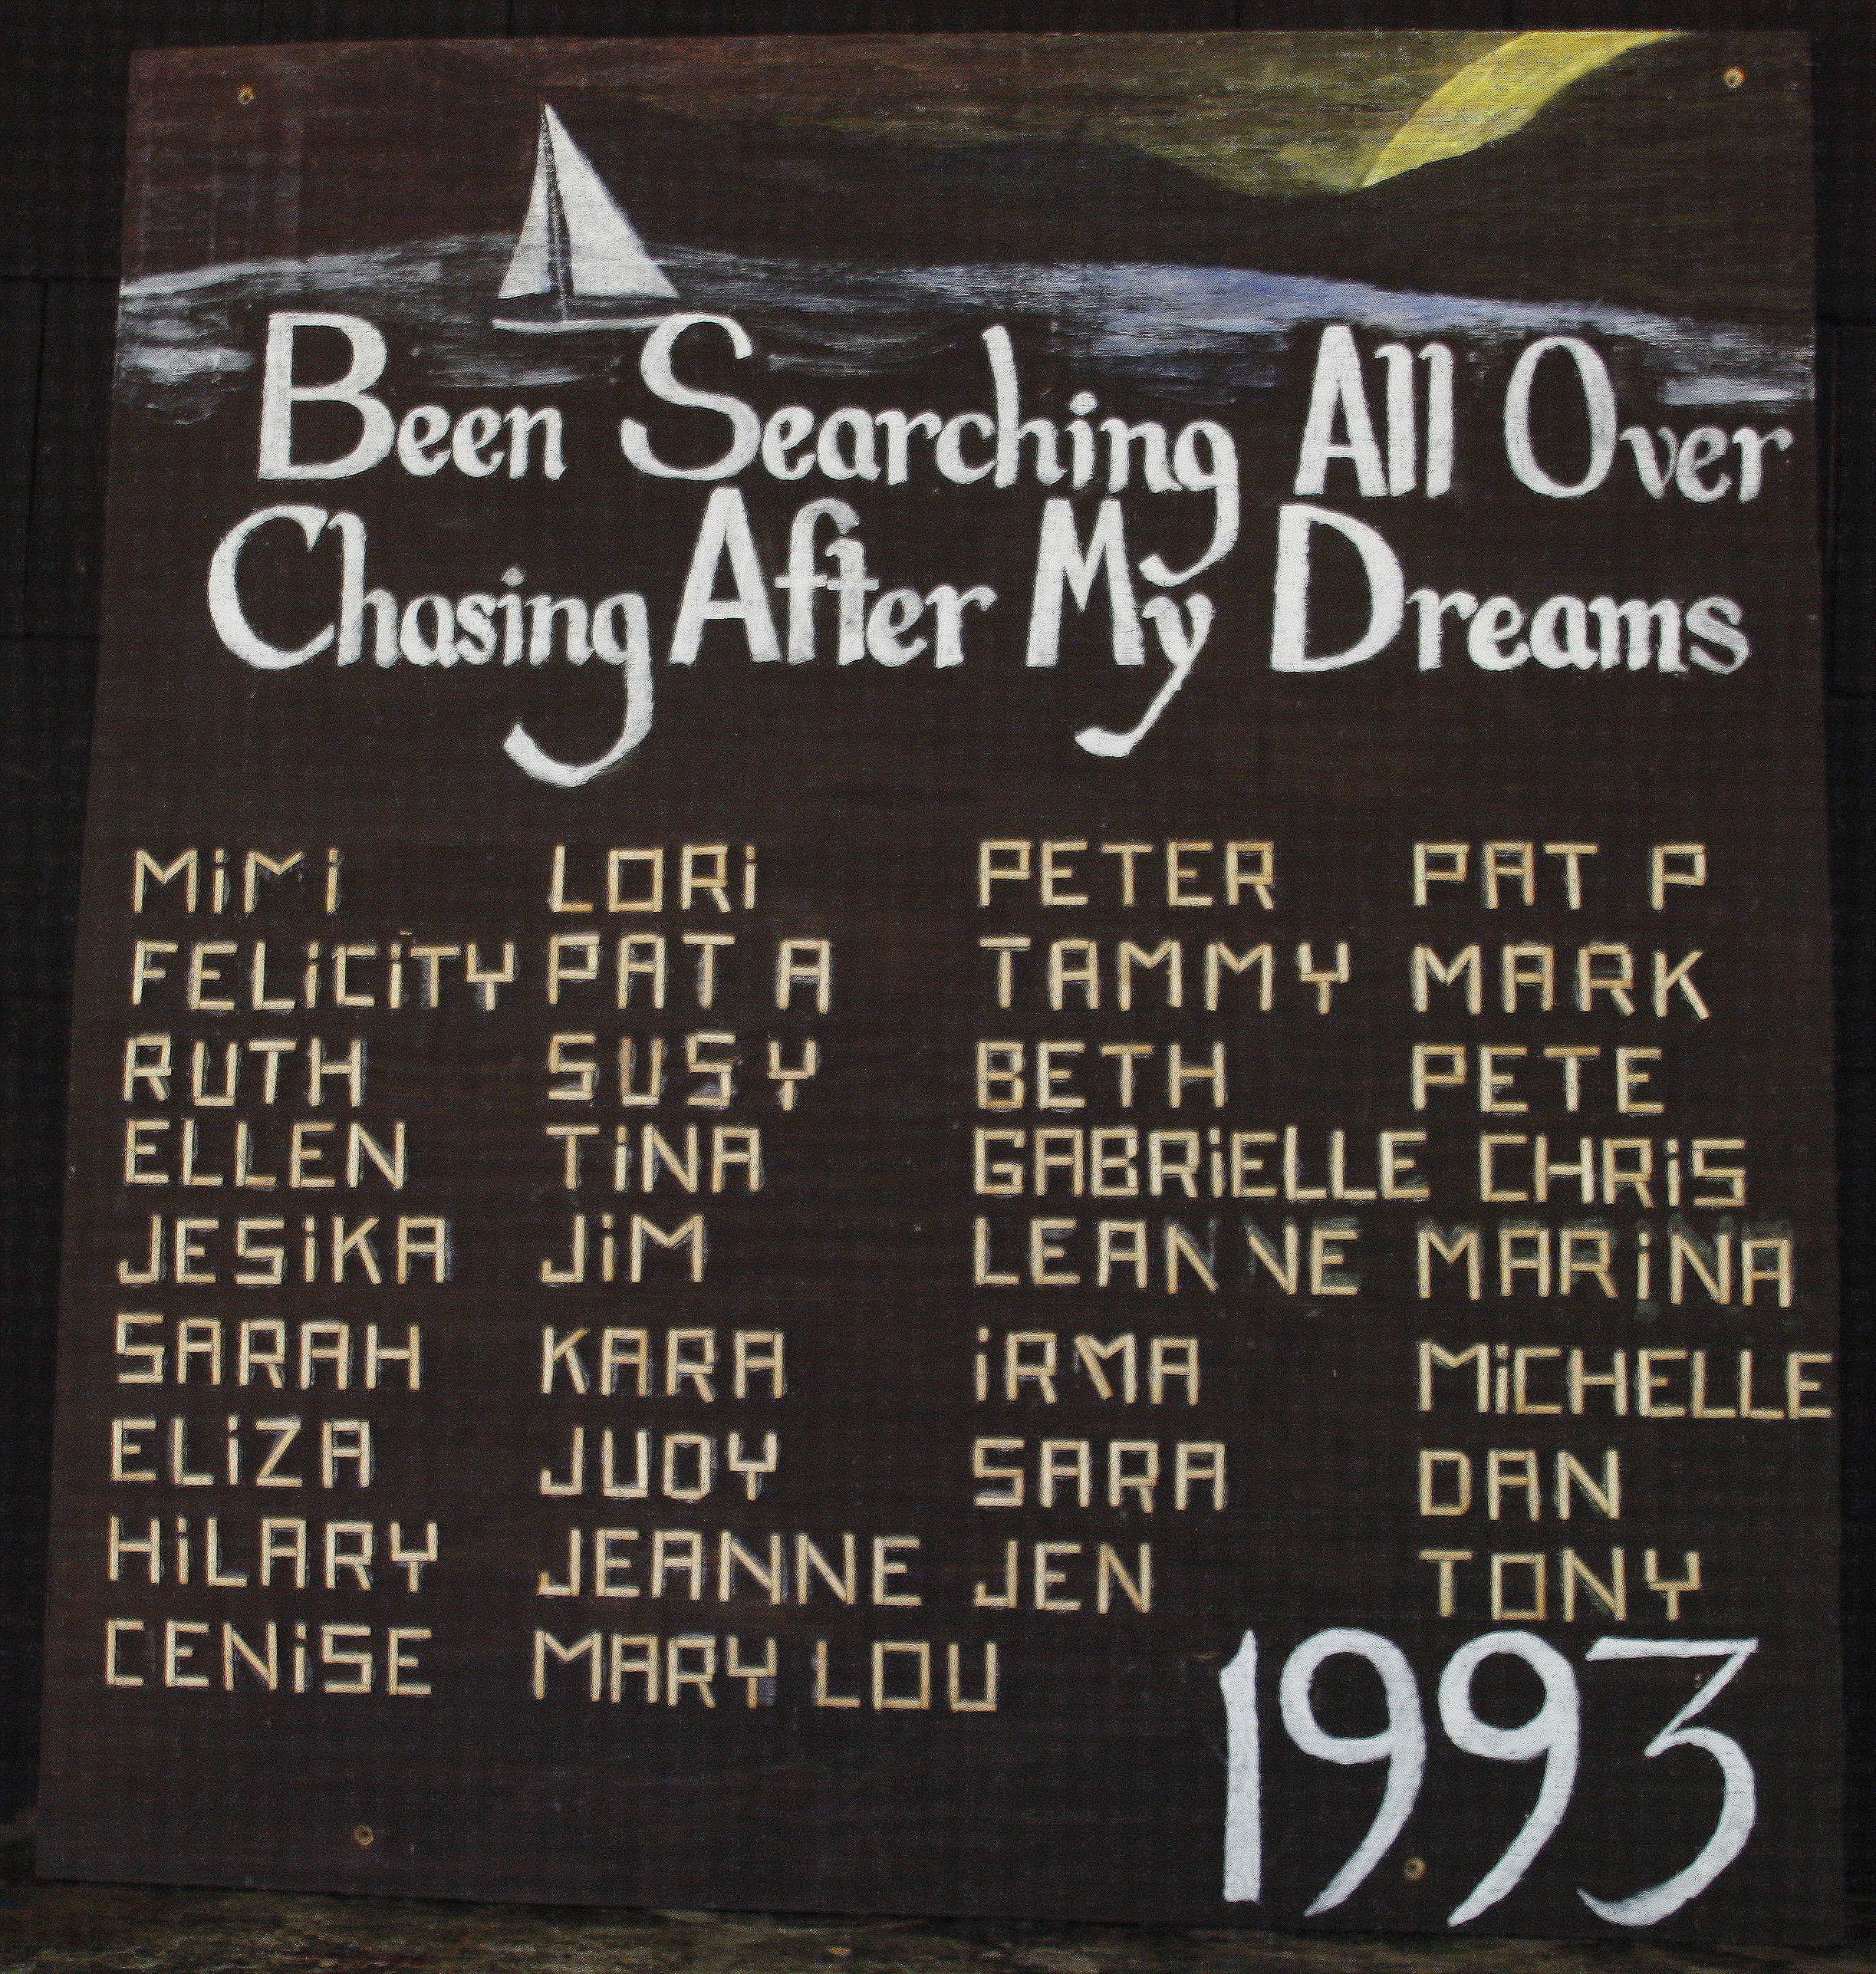 1993-been-searching-all-over-chasing-after-my-dreams_44356434332_o.jpg